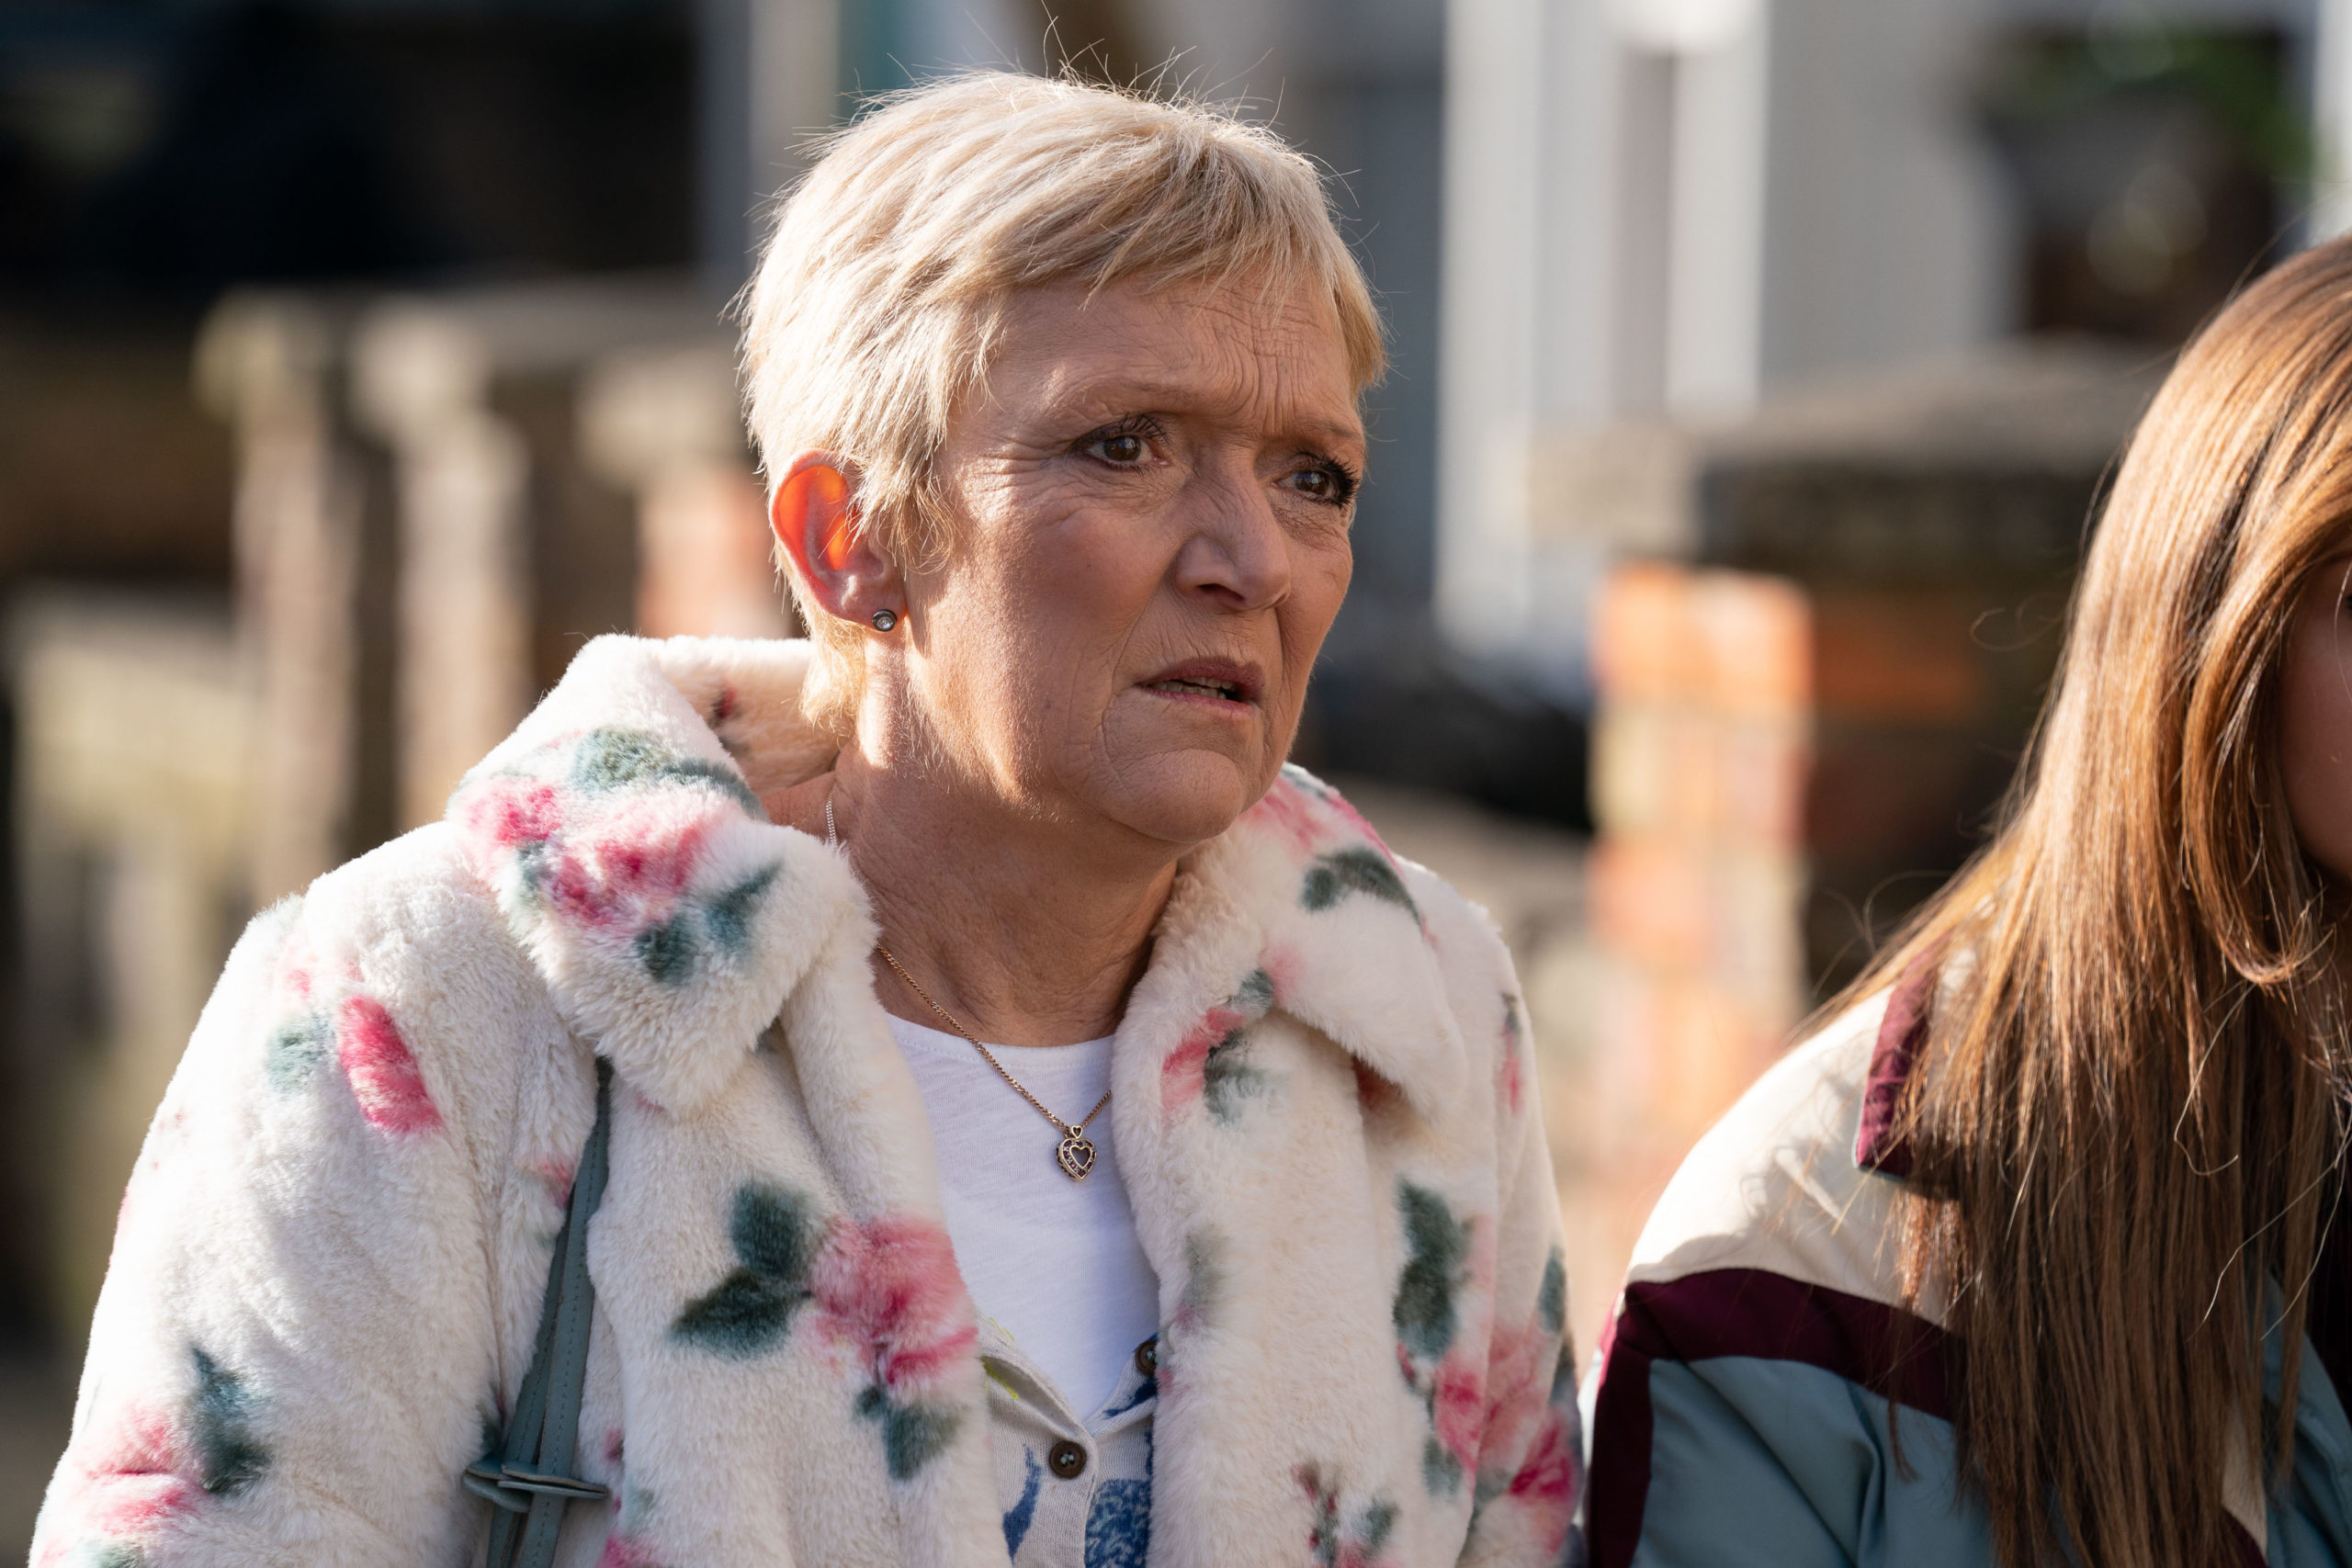 EastEnders fans fear Jean has dementia after she calls Whitney 'Stacey'